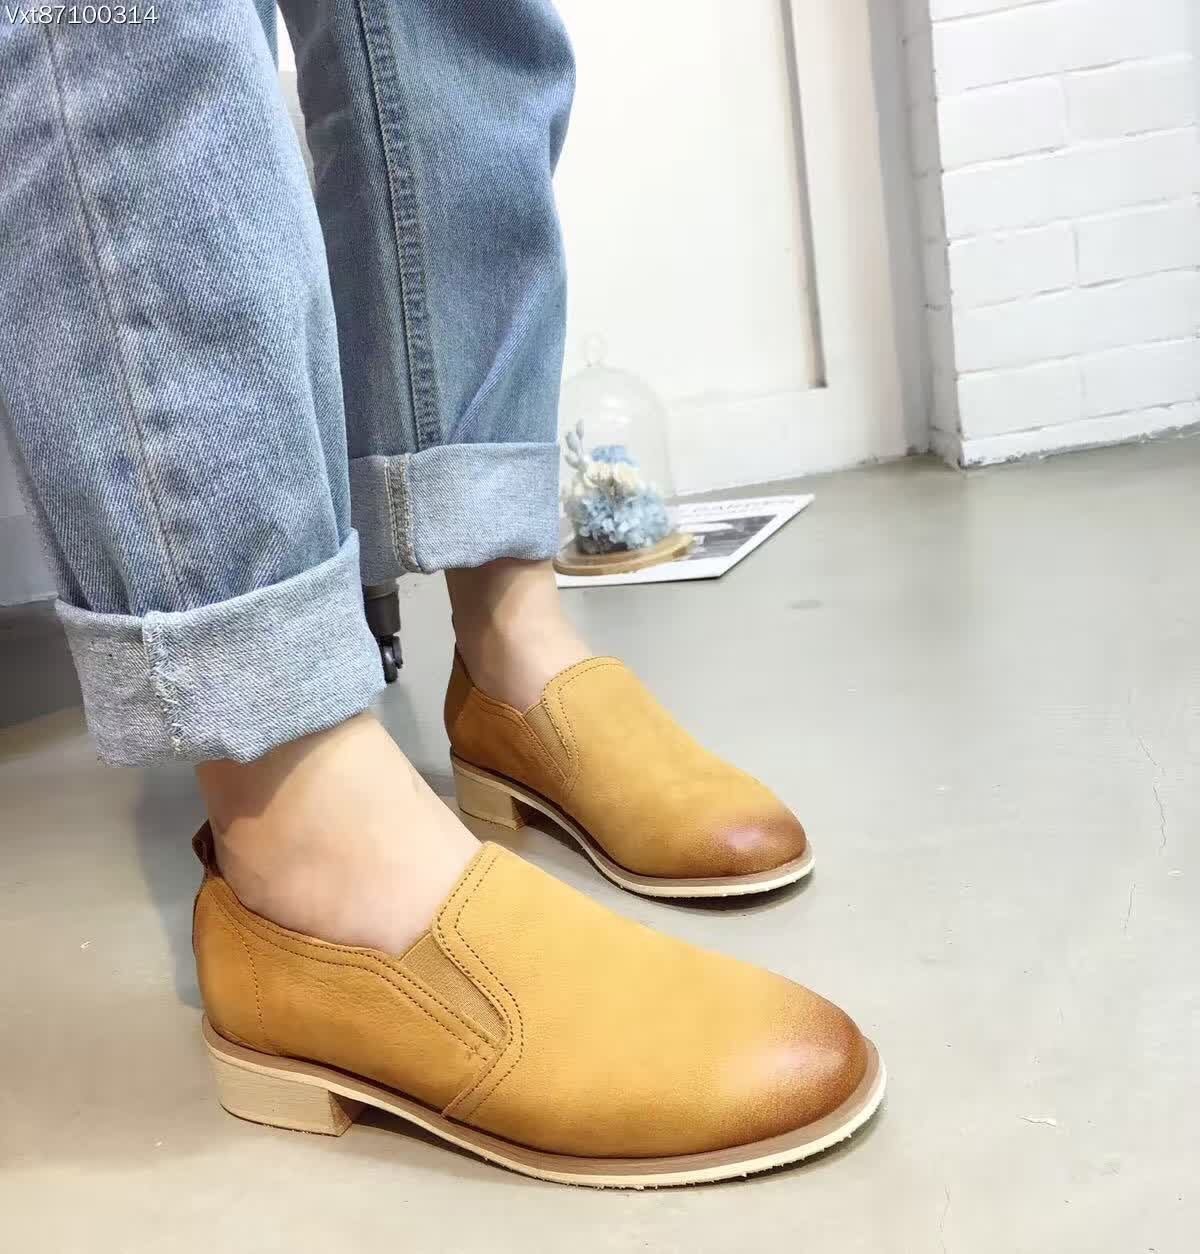 100% Real Cowhide Casual Shoes Womens Loafers Yellow Khaki Oxford Shoes For Women Leather Shoes Mujer Zapatos Mocasines